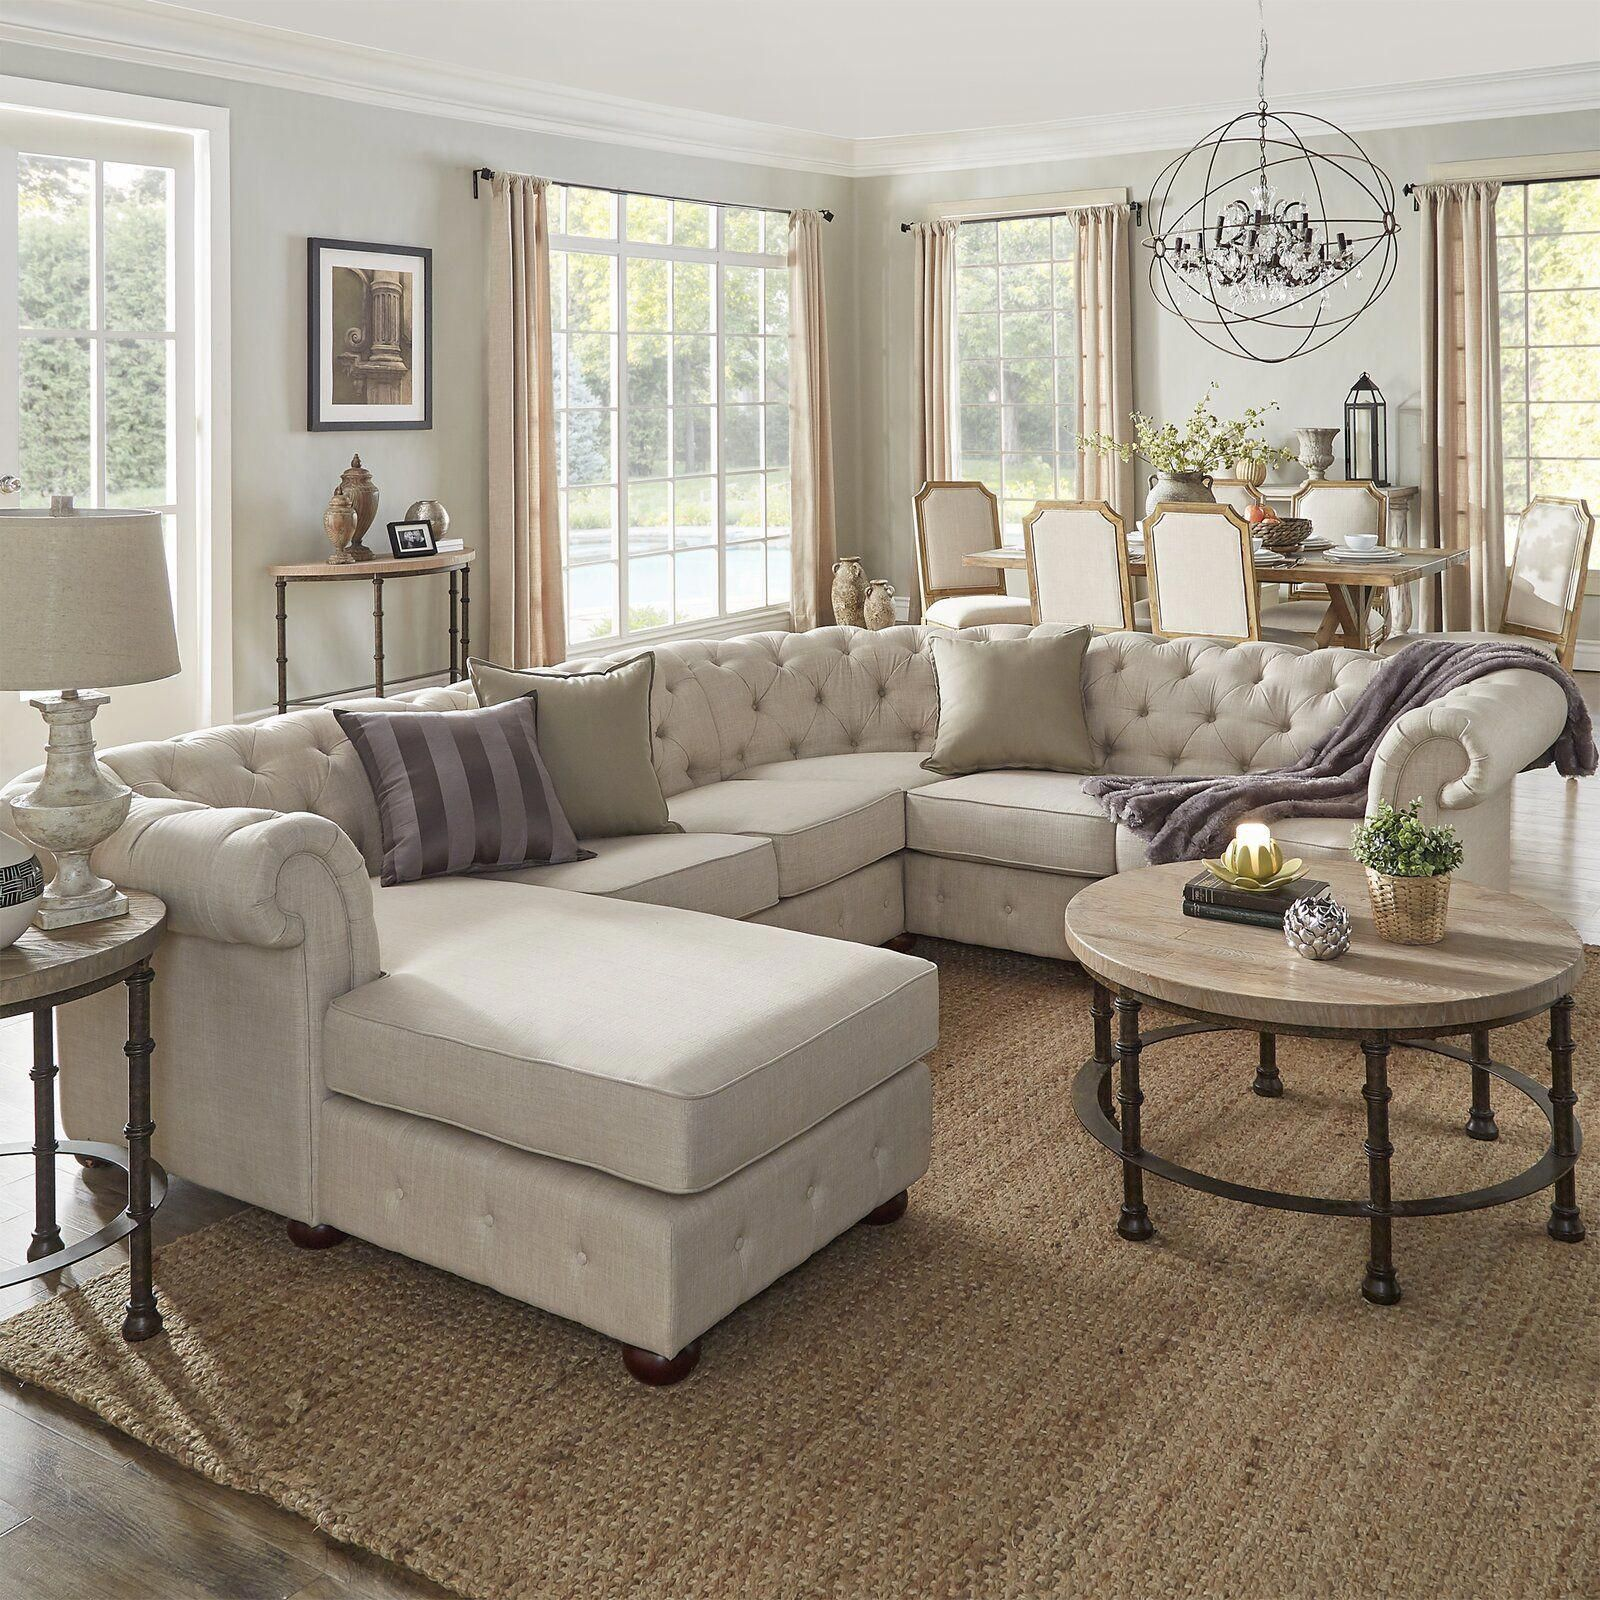 Darby Home Co Brockway Sectional   Wayfair homedecorclassic   Farmhouse living room furniture ...